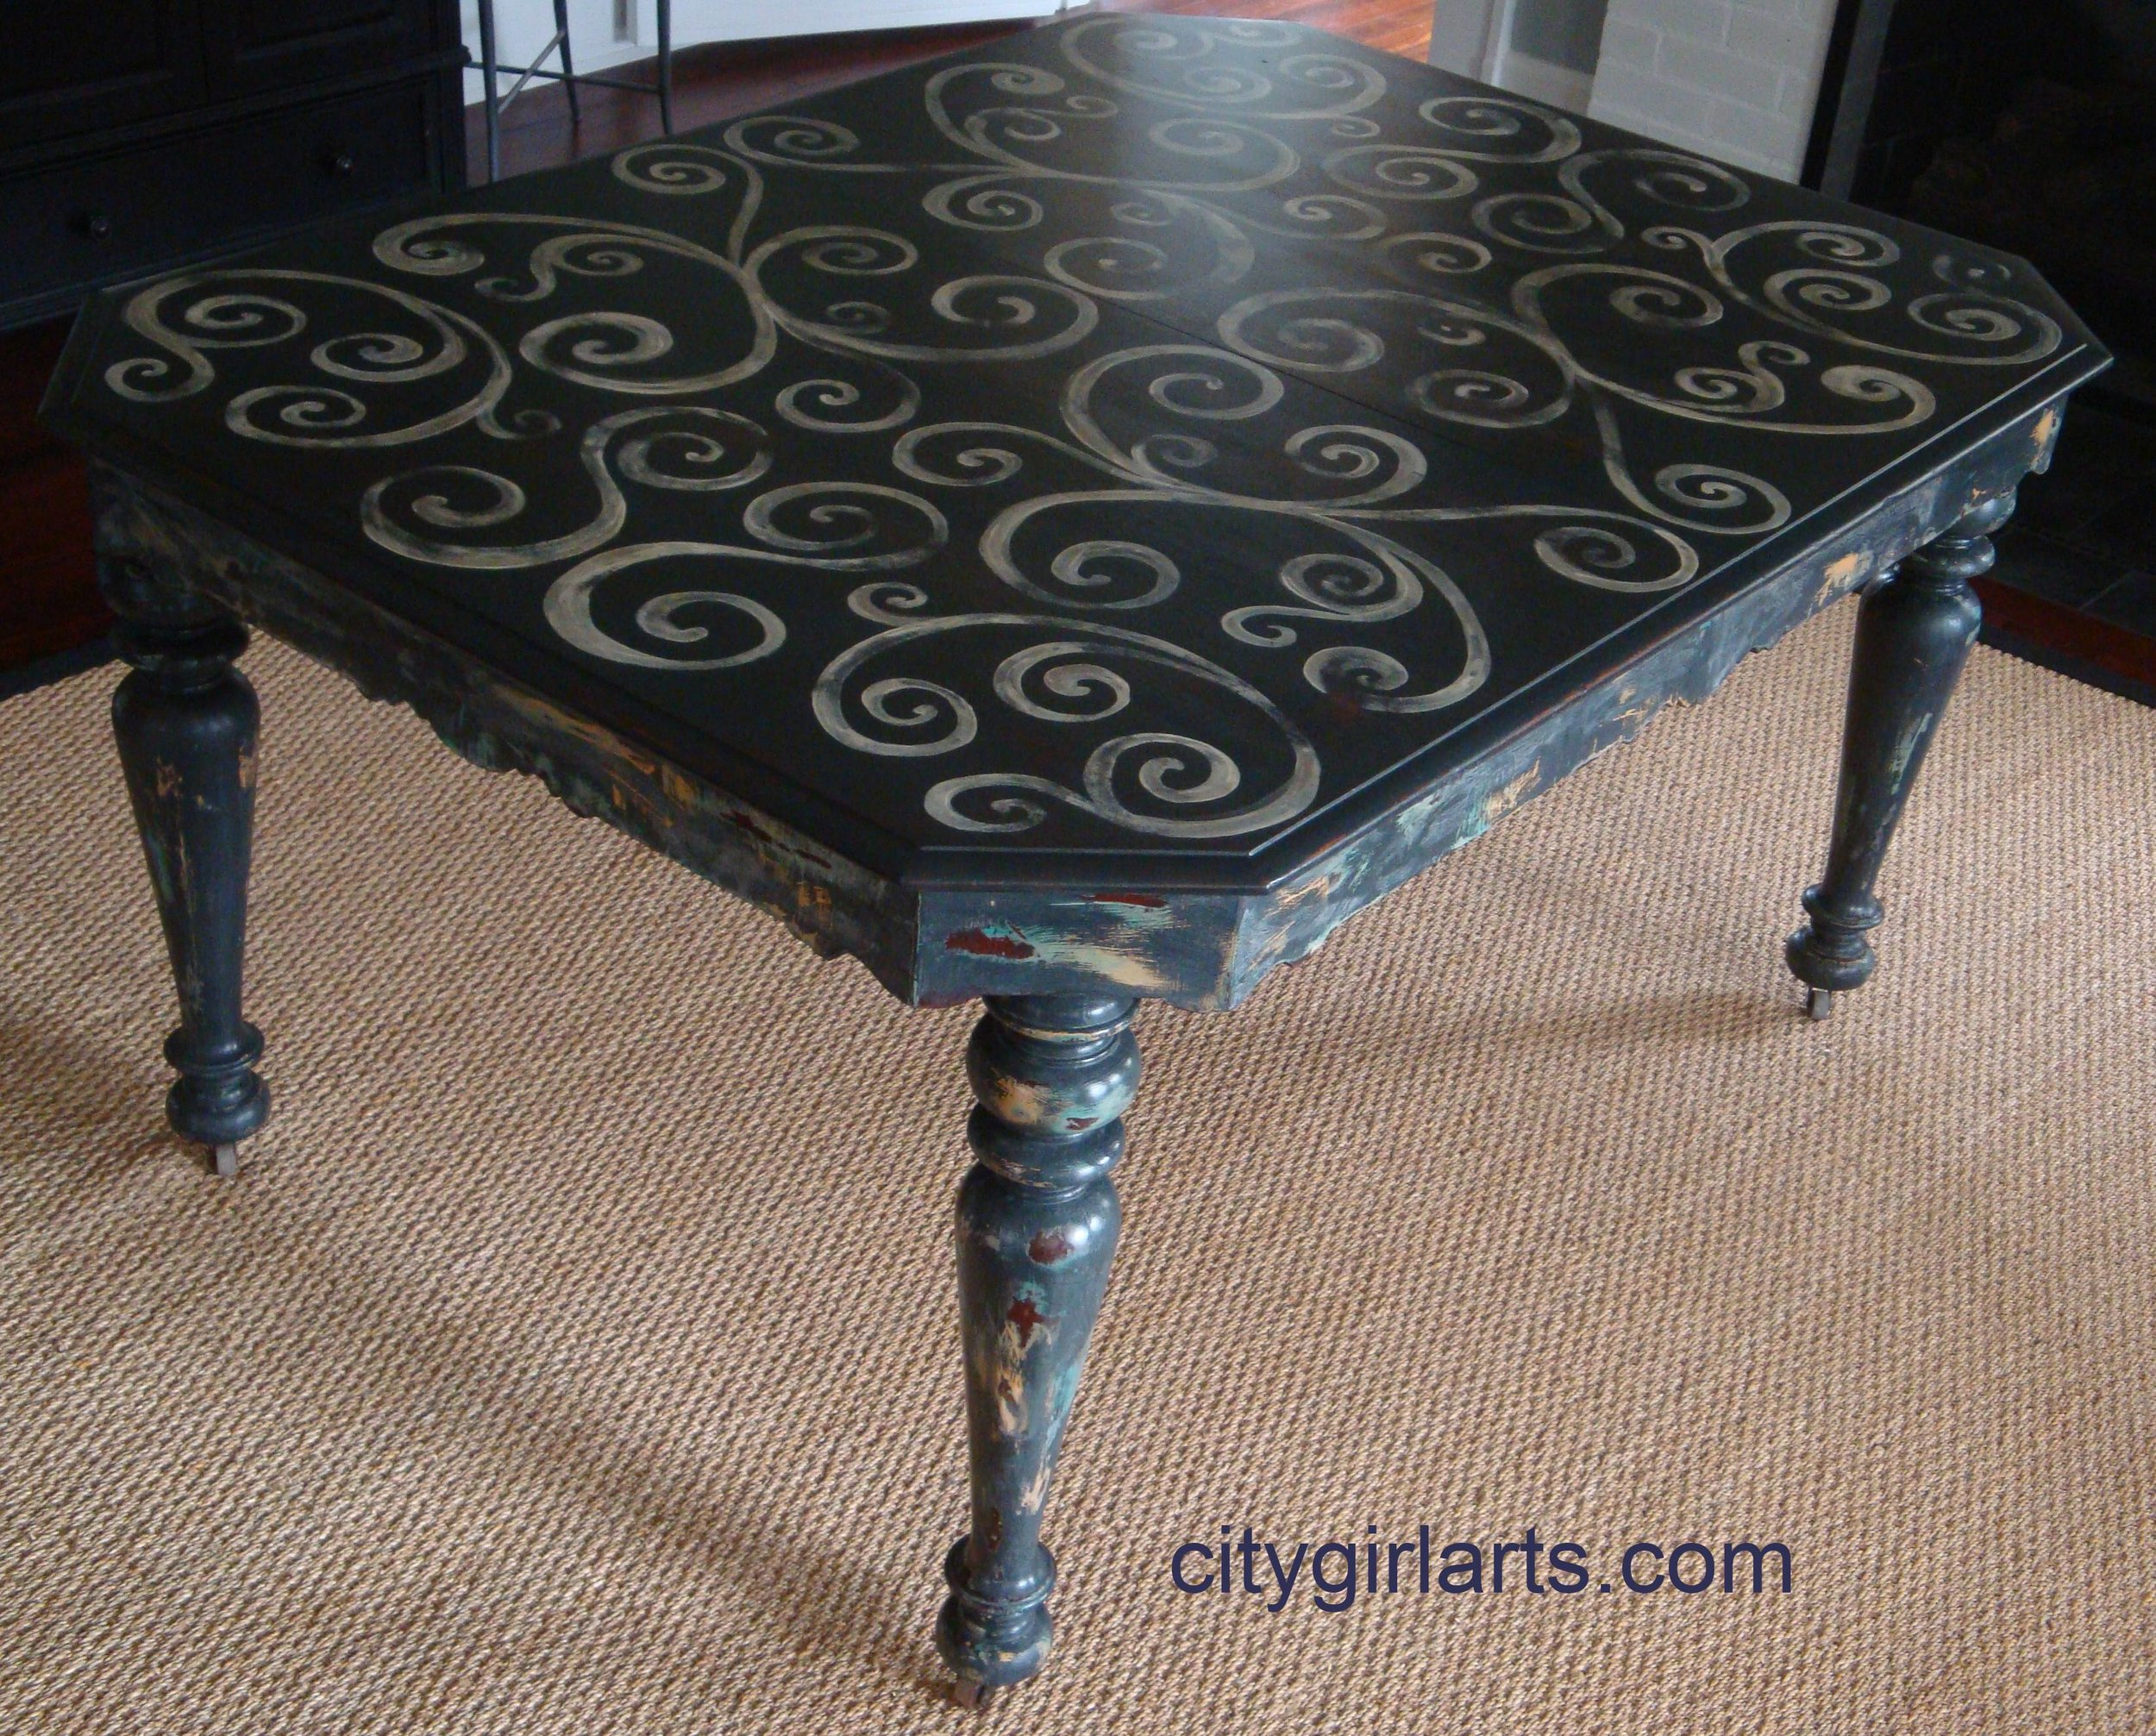 Antique French Farm Swirl Table